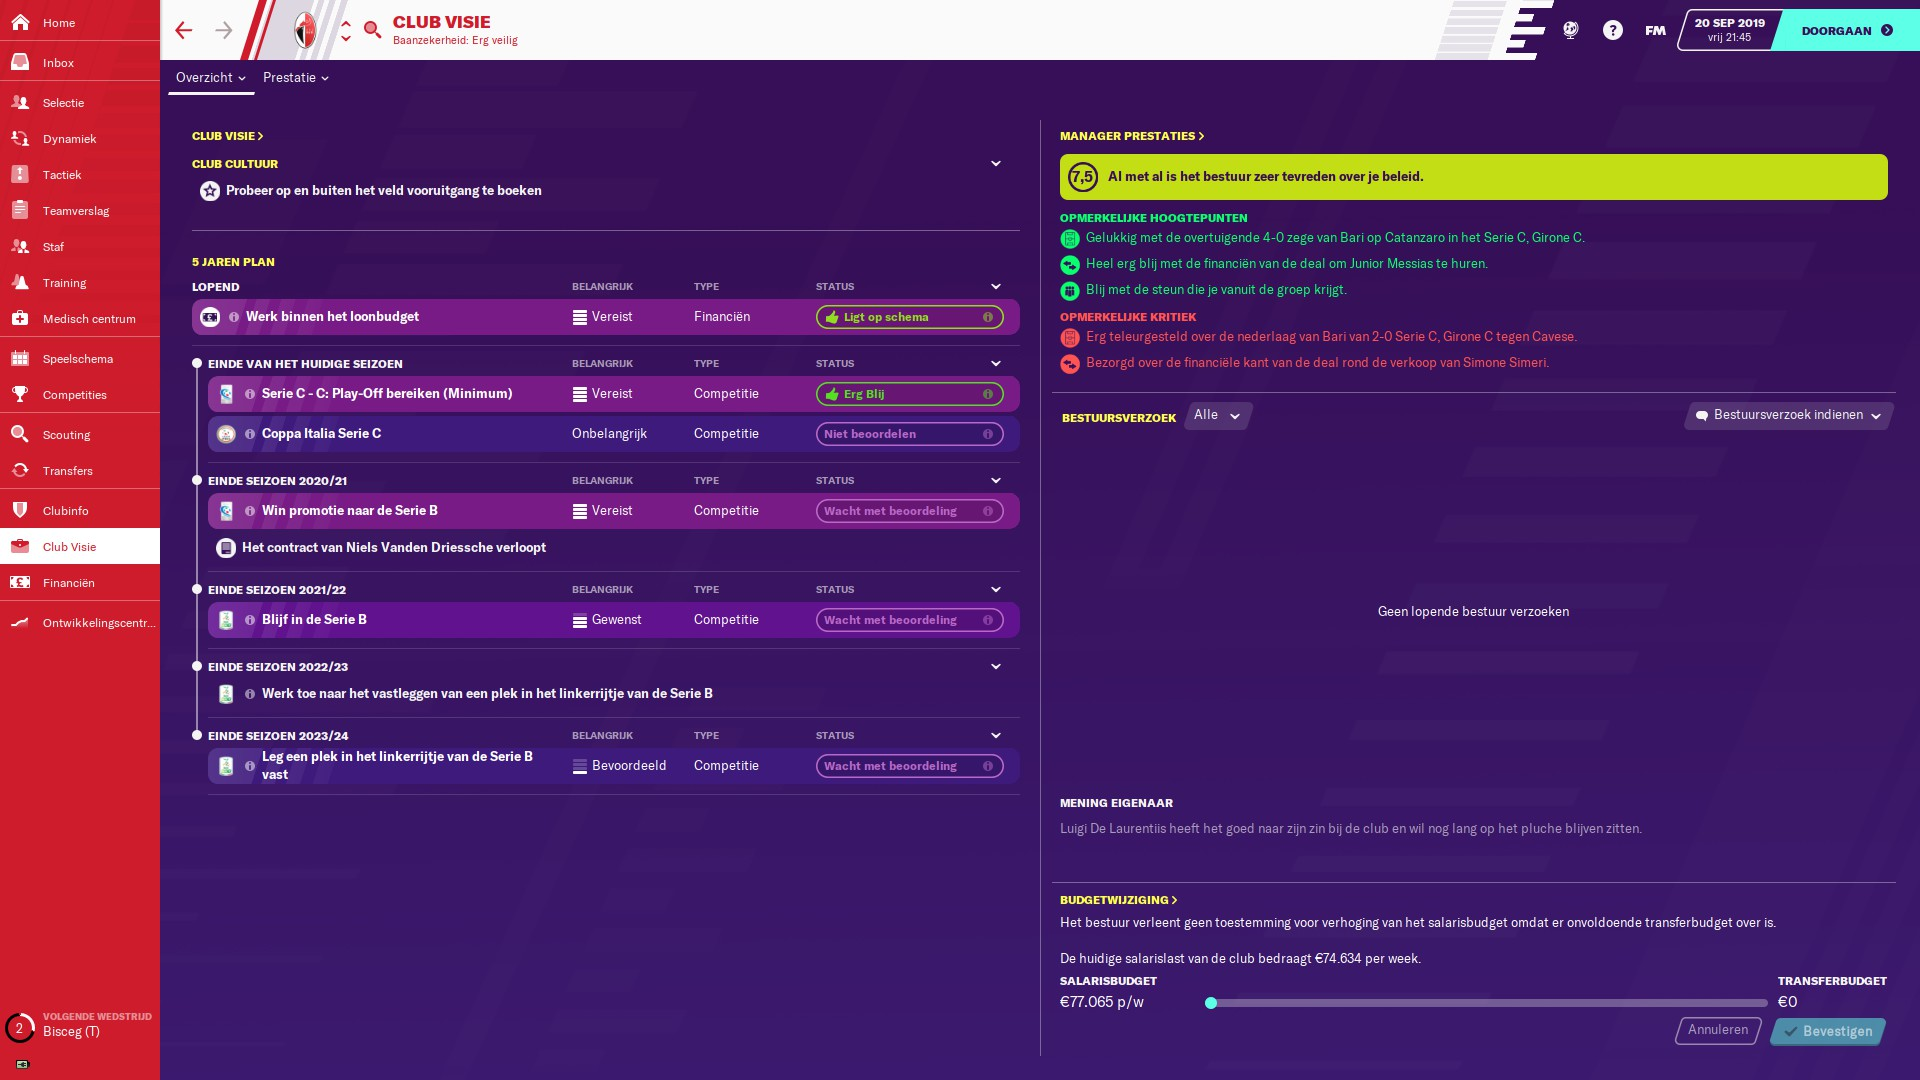 Football Manager 2020 clubvisie